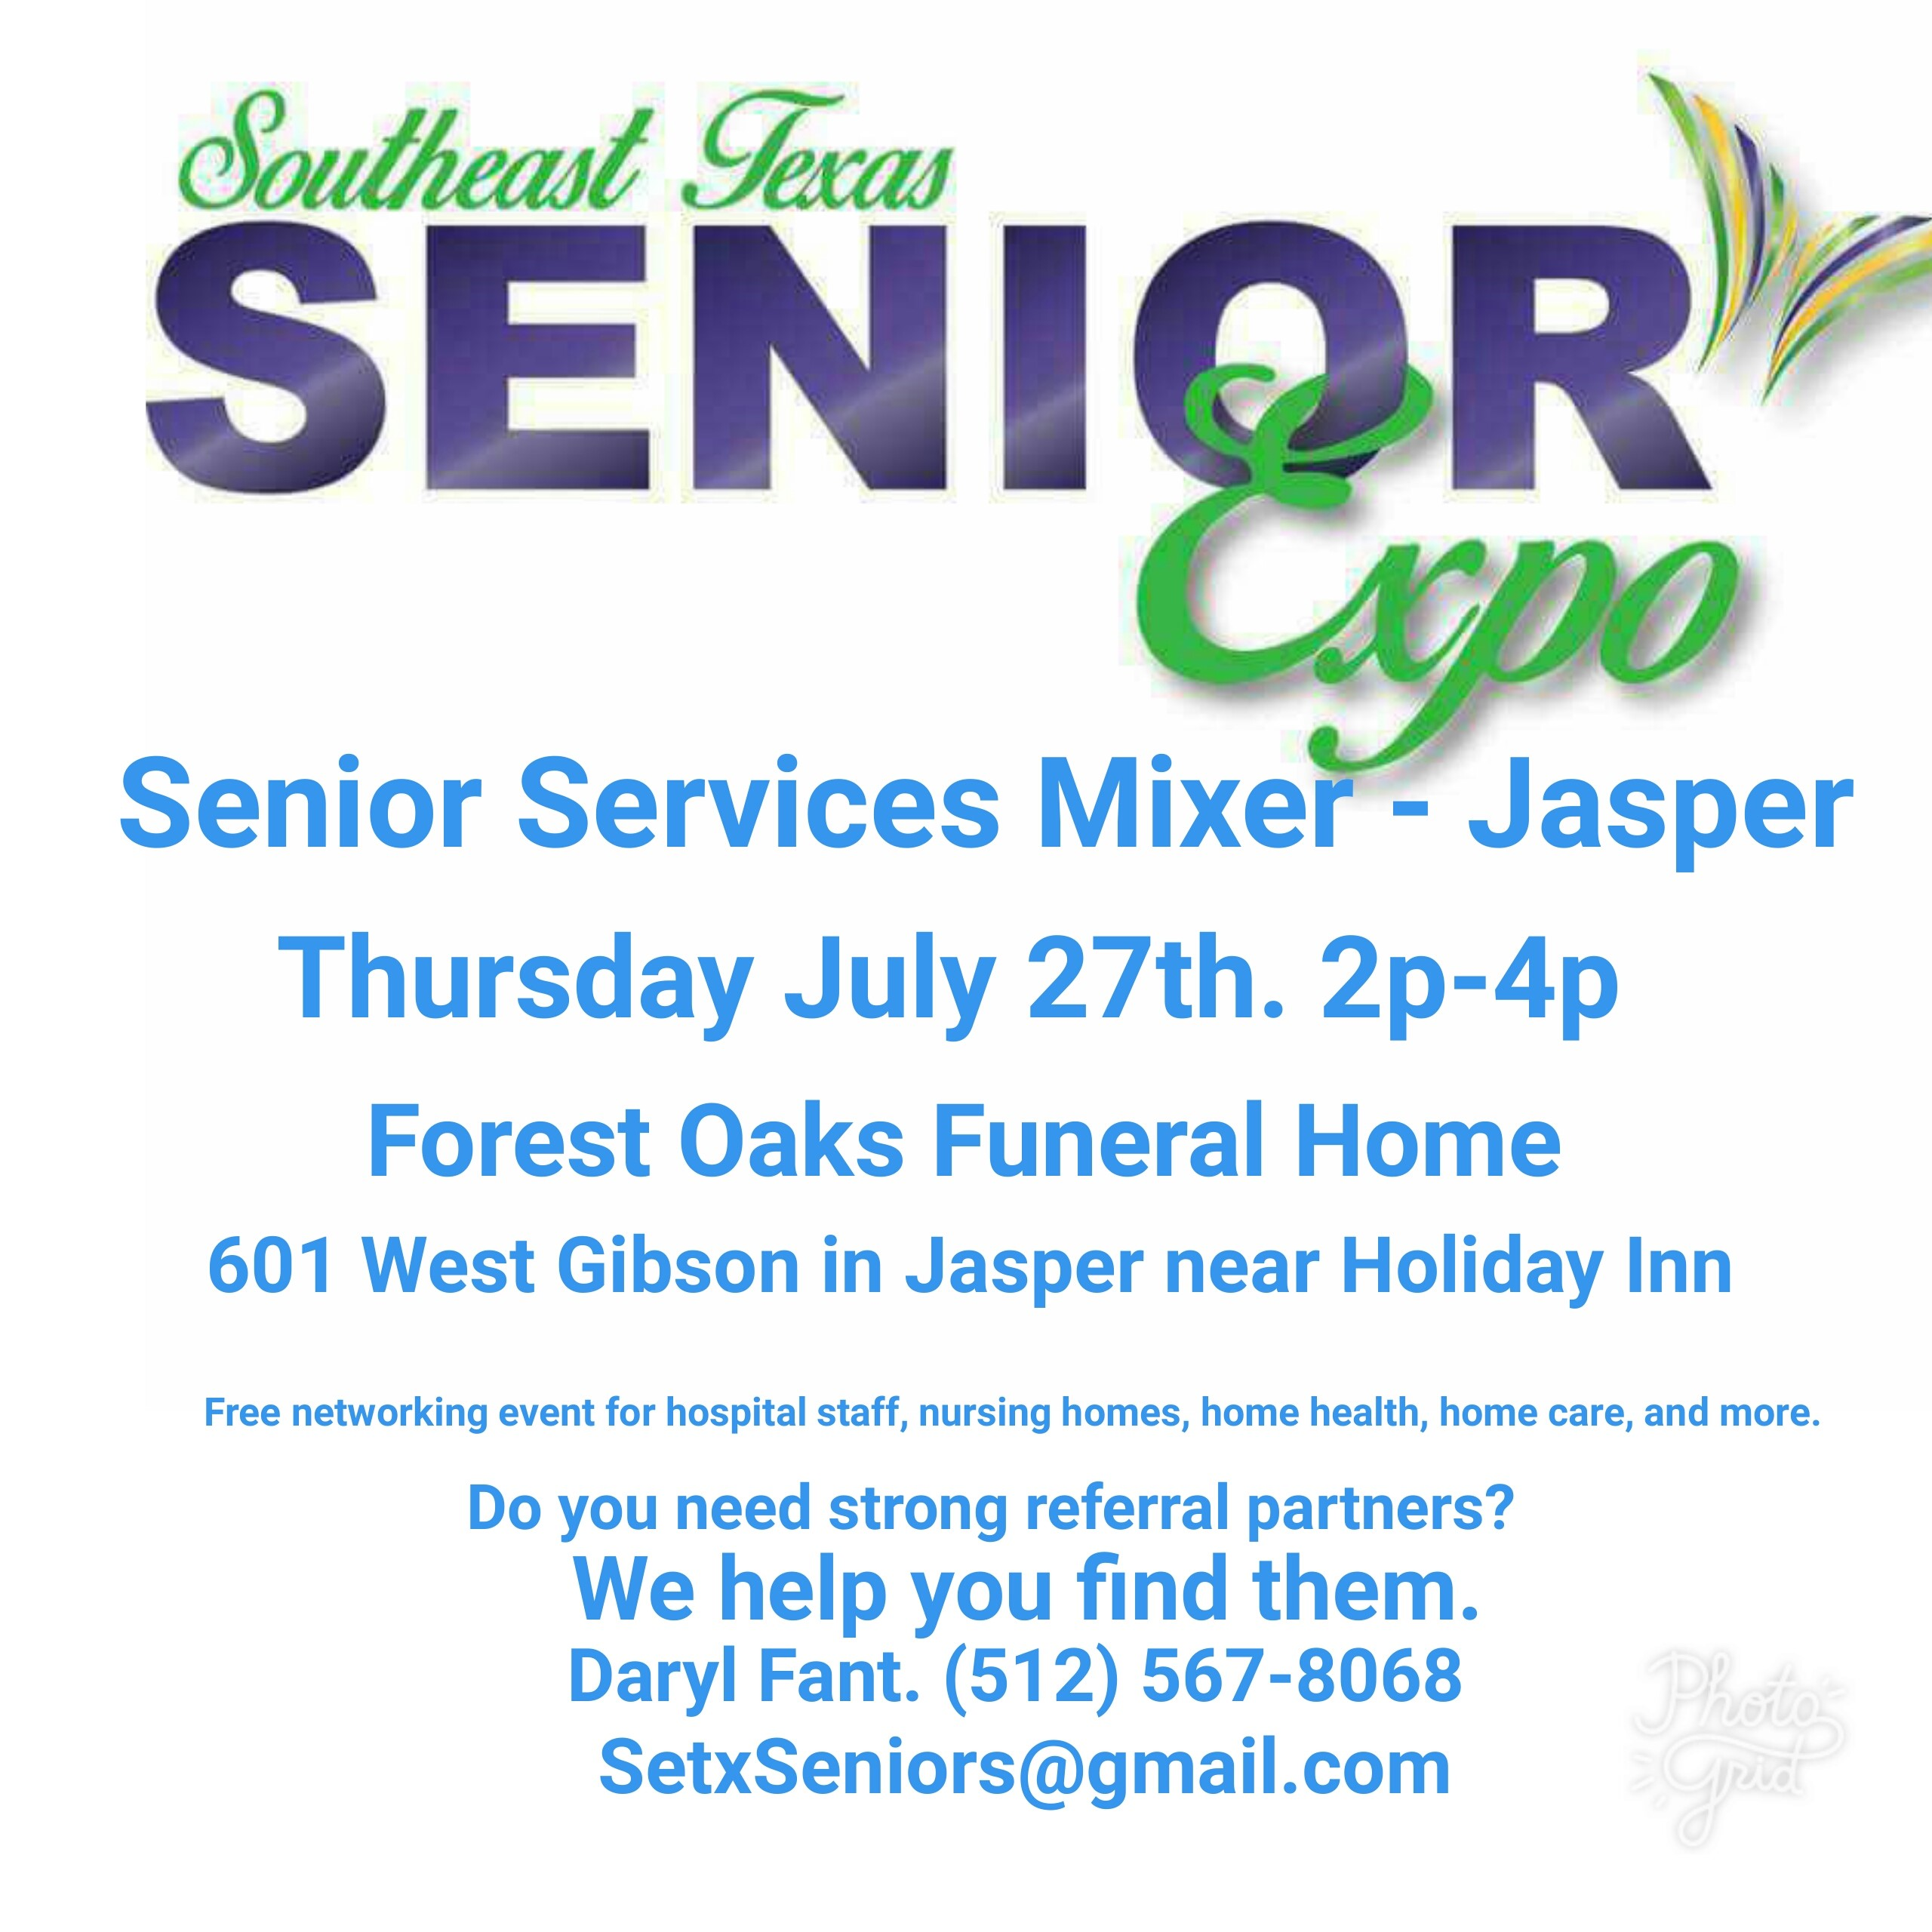 networking event Jasper TX, senior services Jasper TX, senior events Jasper TX, senior resources Jasper TX